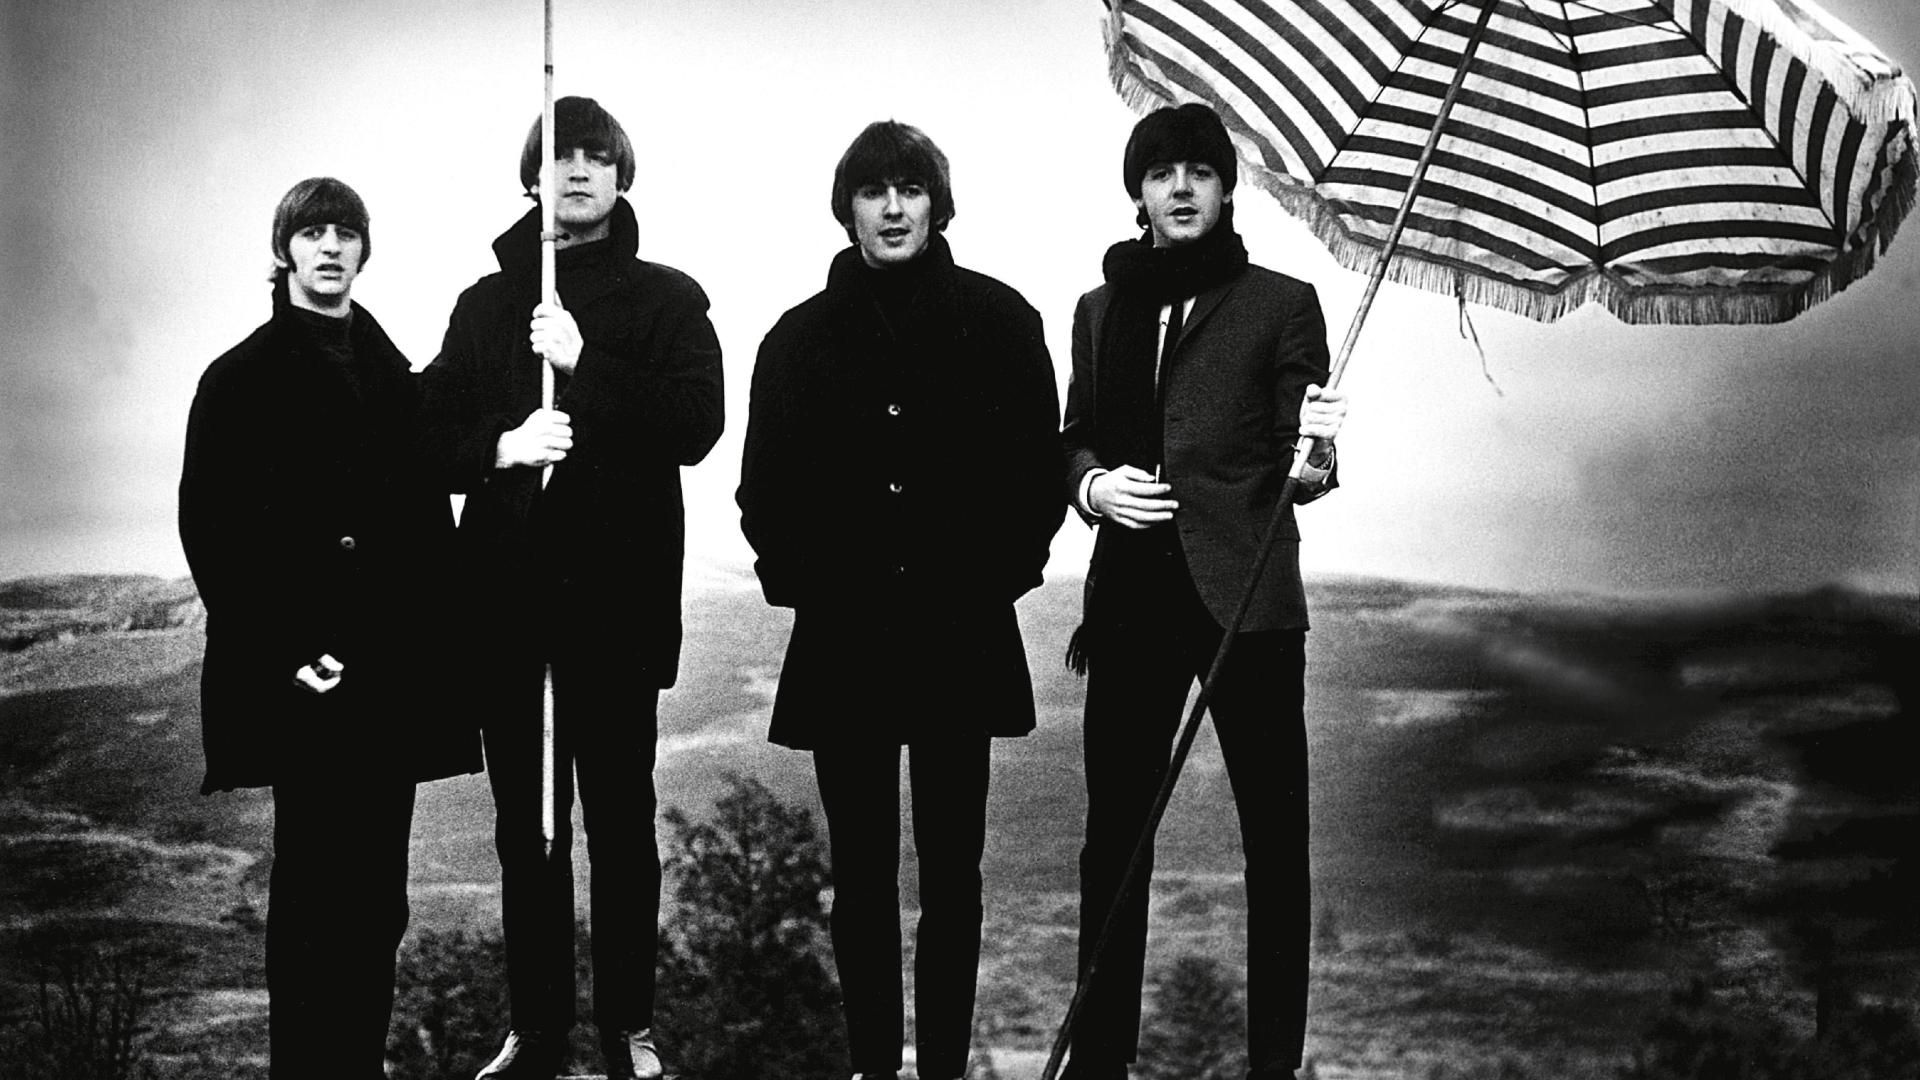 Music The Beatles Wallpaper Background 1920 X 1080